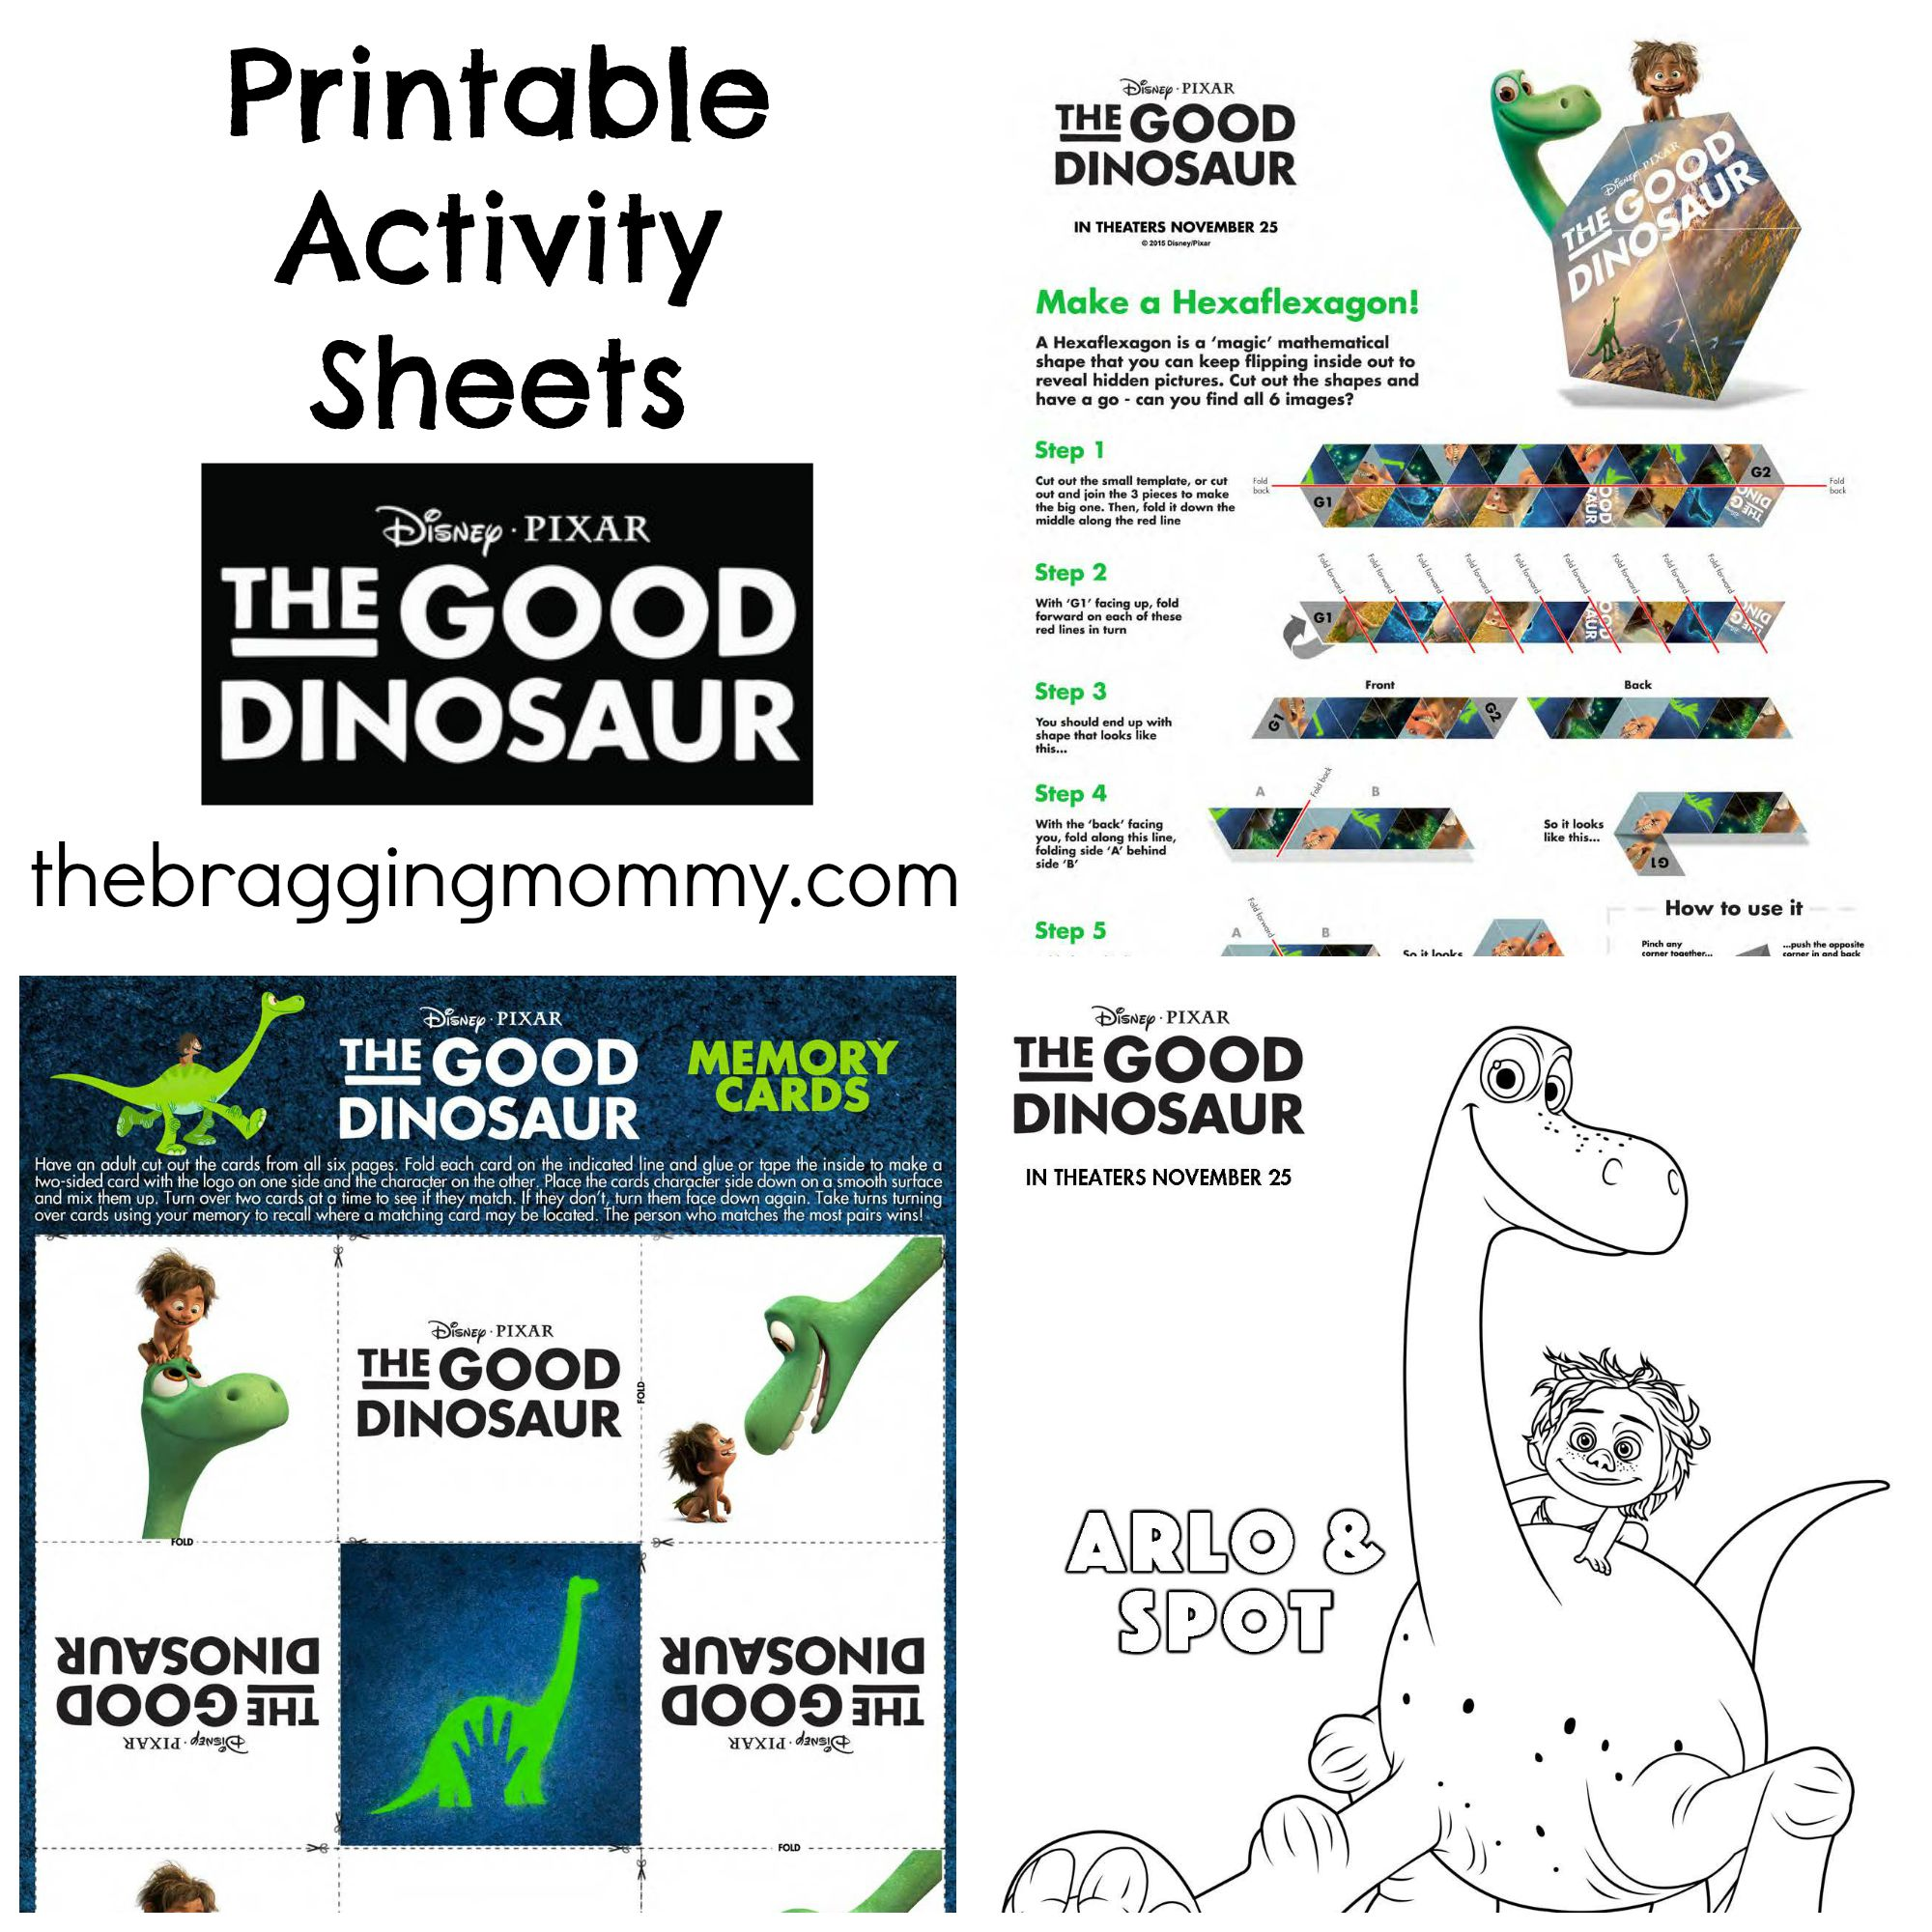 The Good Dinosaur Official Trailer + Printable Activity Sheets #GoodDino